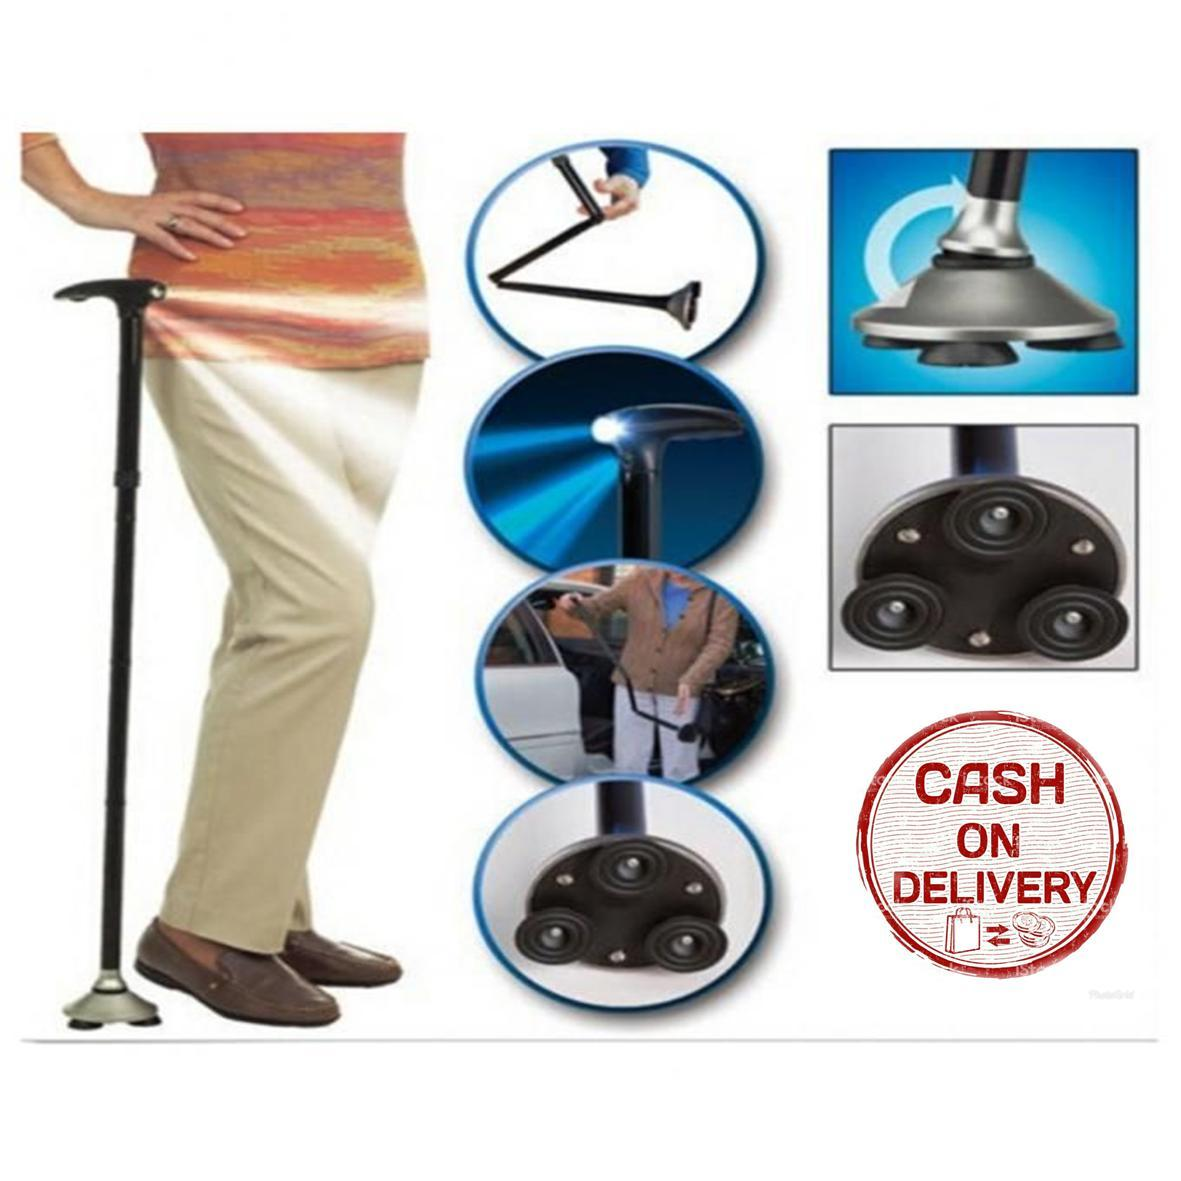 Sien Collection Tongkat Bantu Jalan Manula / Folding Magic Wand / Trusty Cane / Alat Bantu Jalan Orang Sakit / Alat Bantu Jalan Murah / Tongkat Lipat / Magic Cane With Led Light